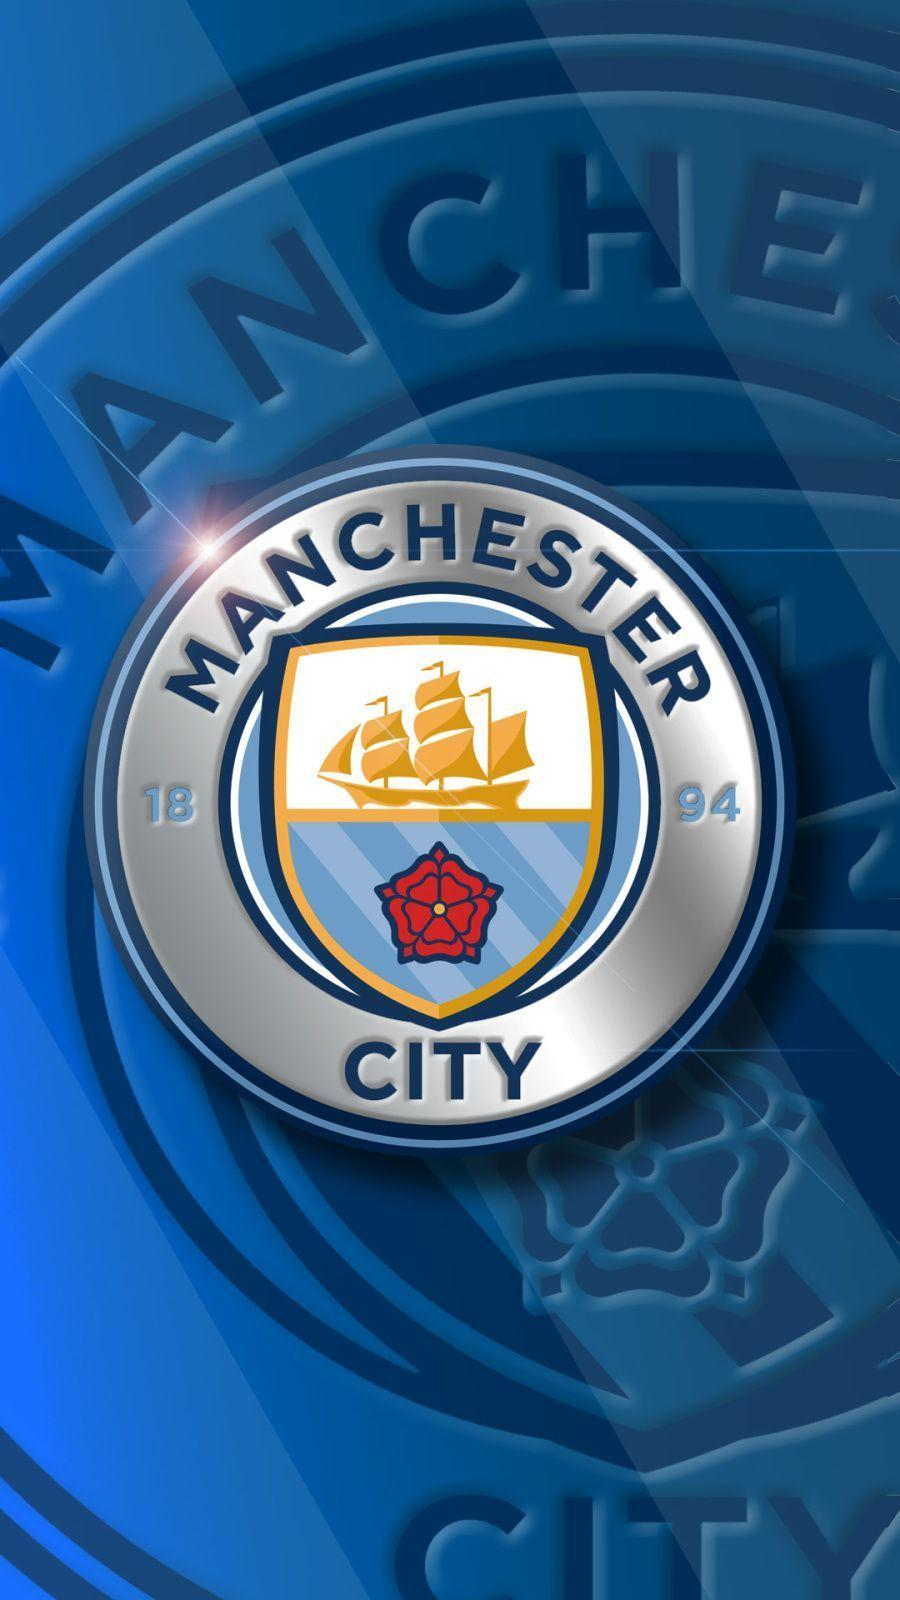 manchester city logos wallpapers